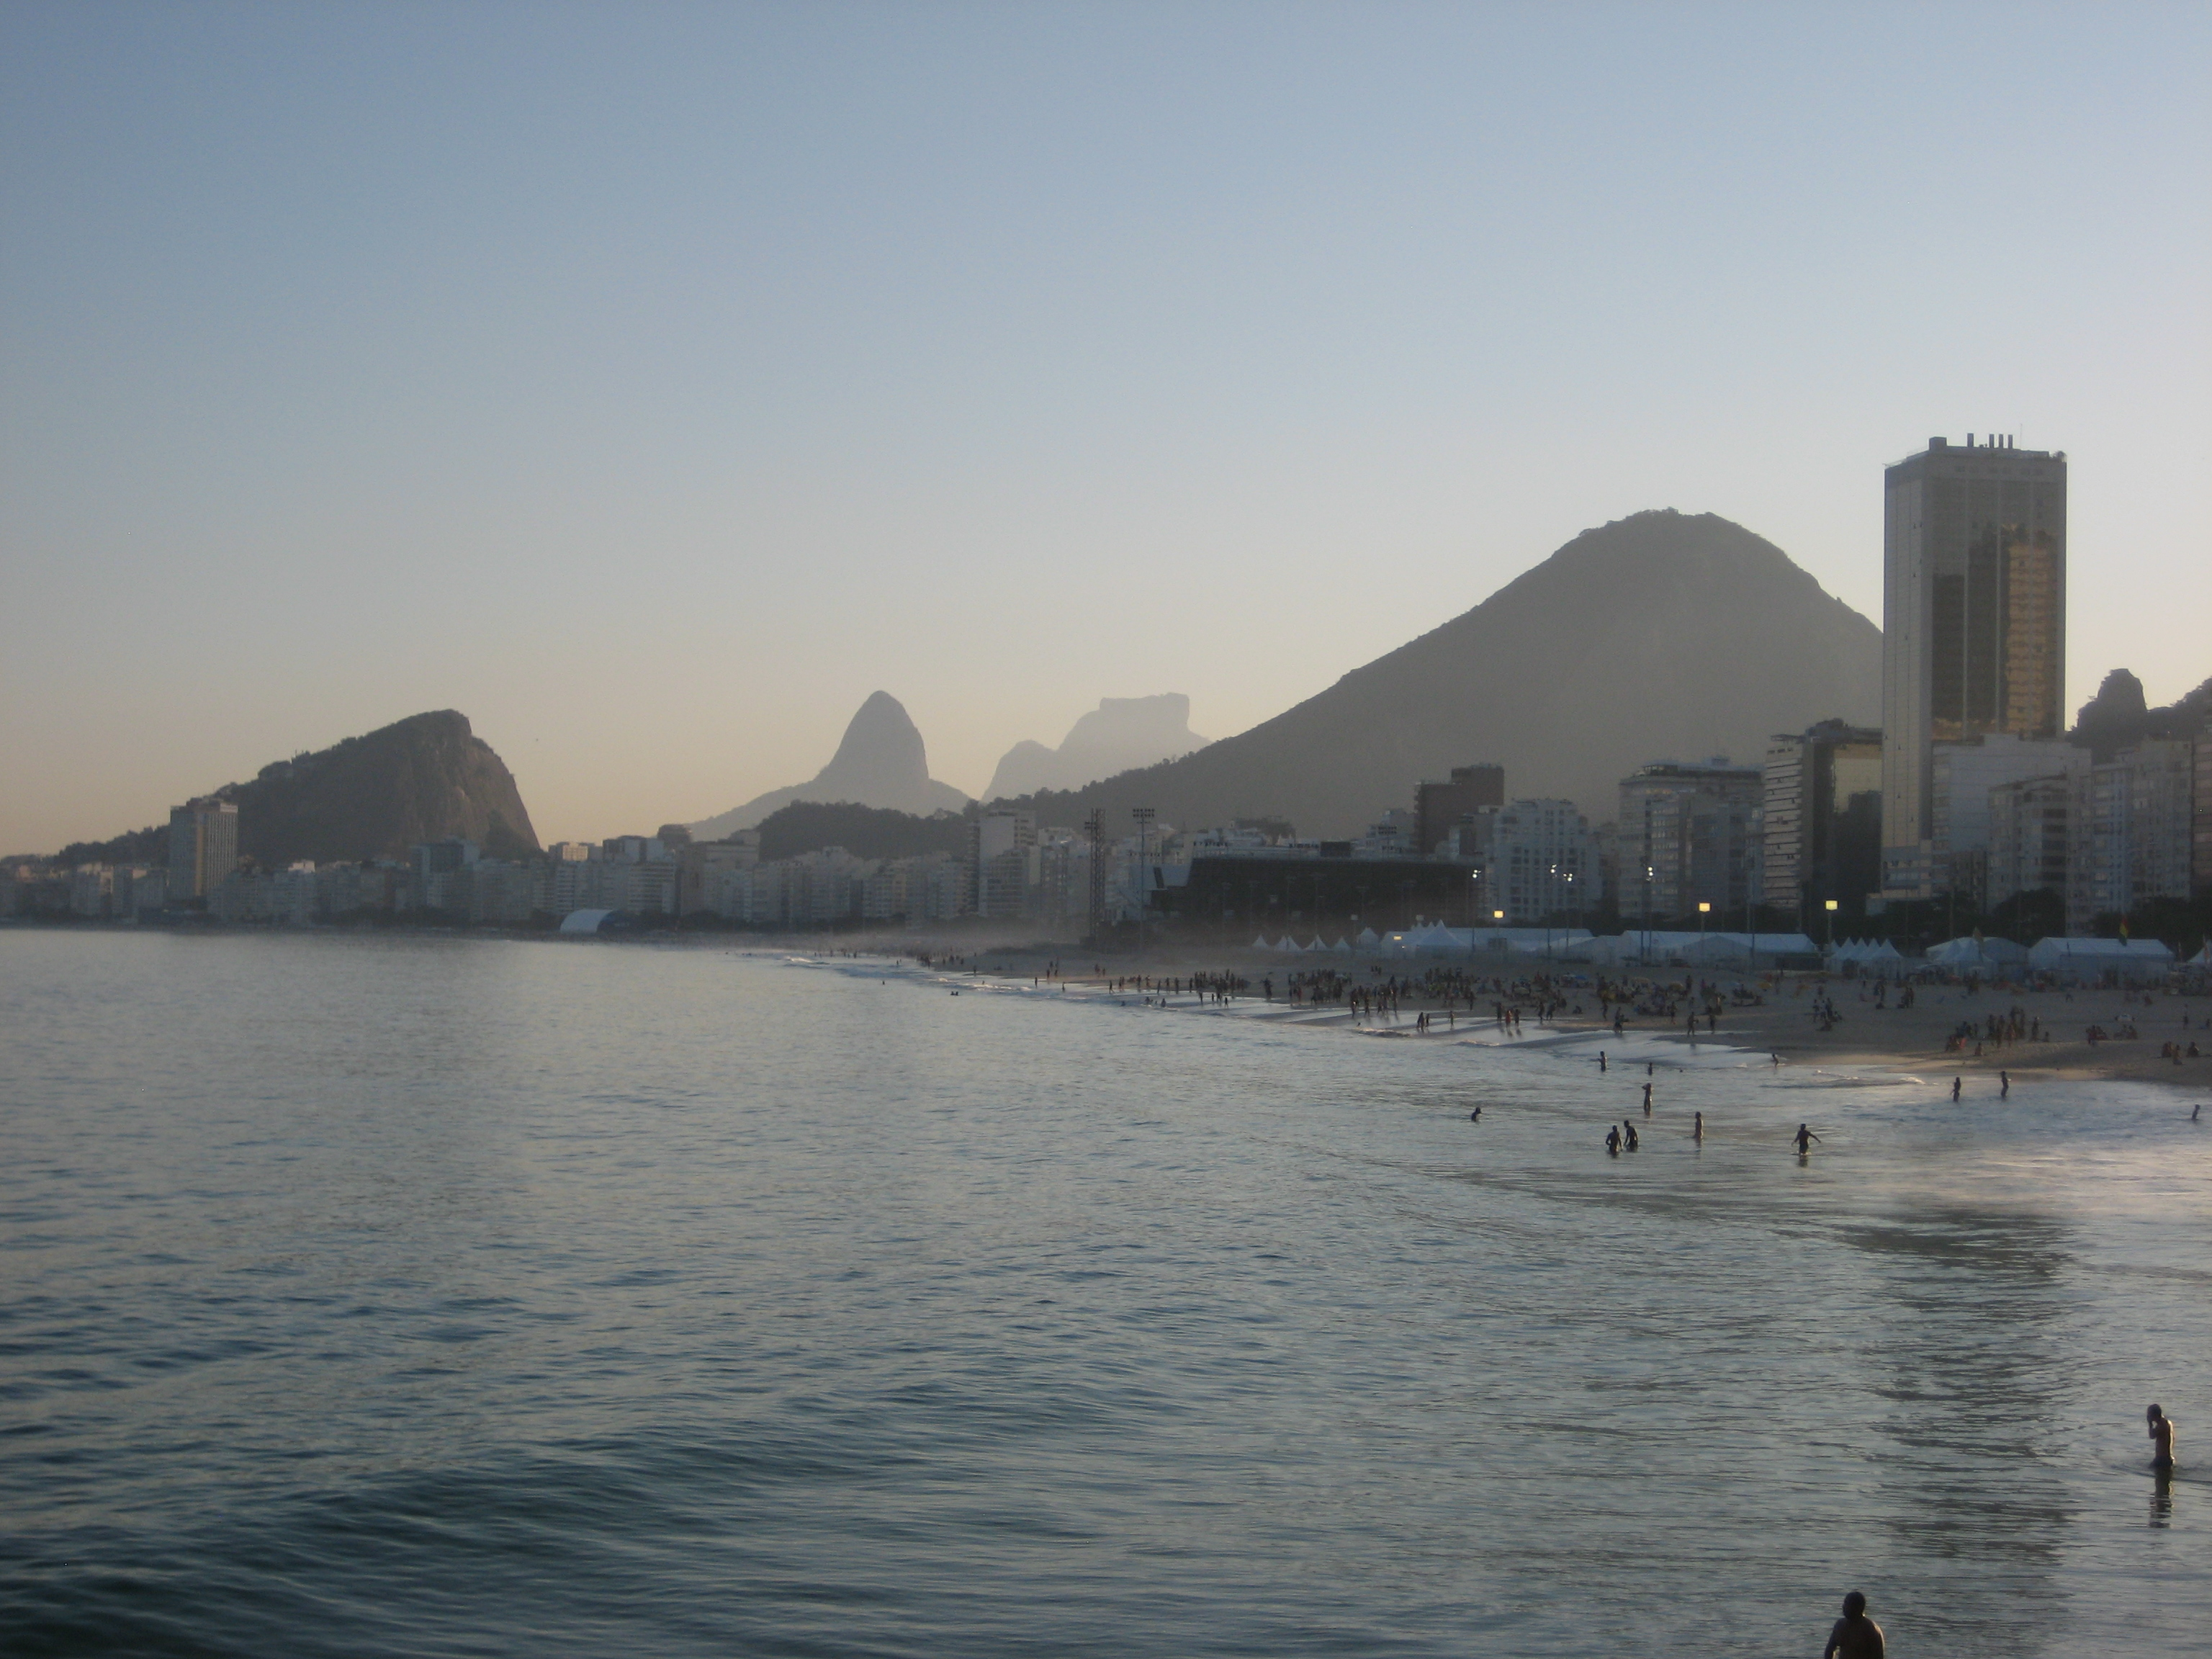 Copacabana beach view